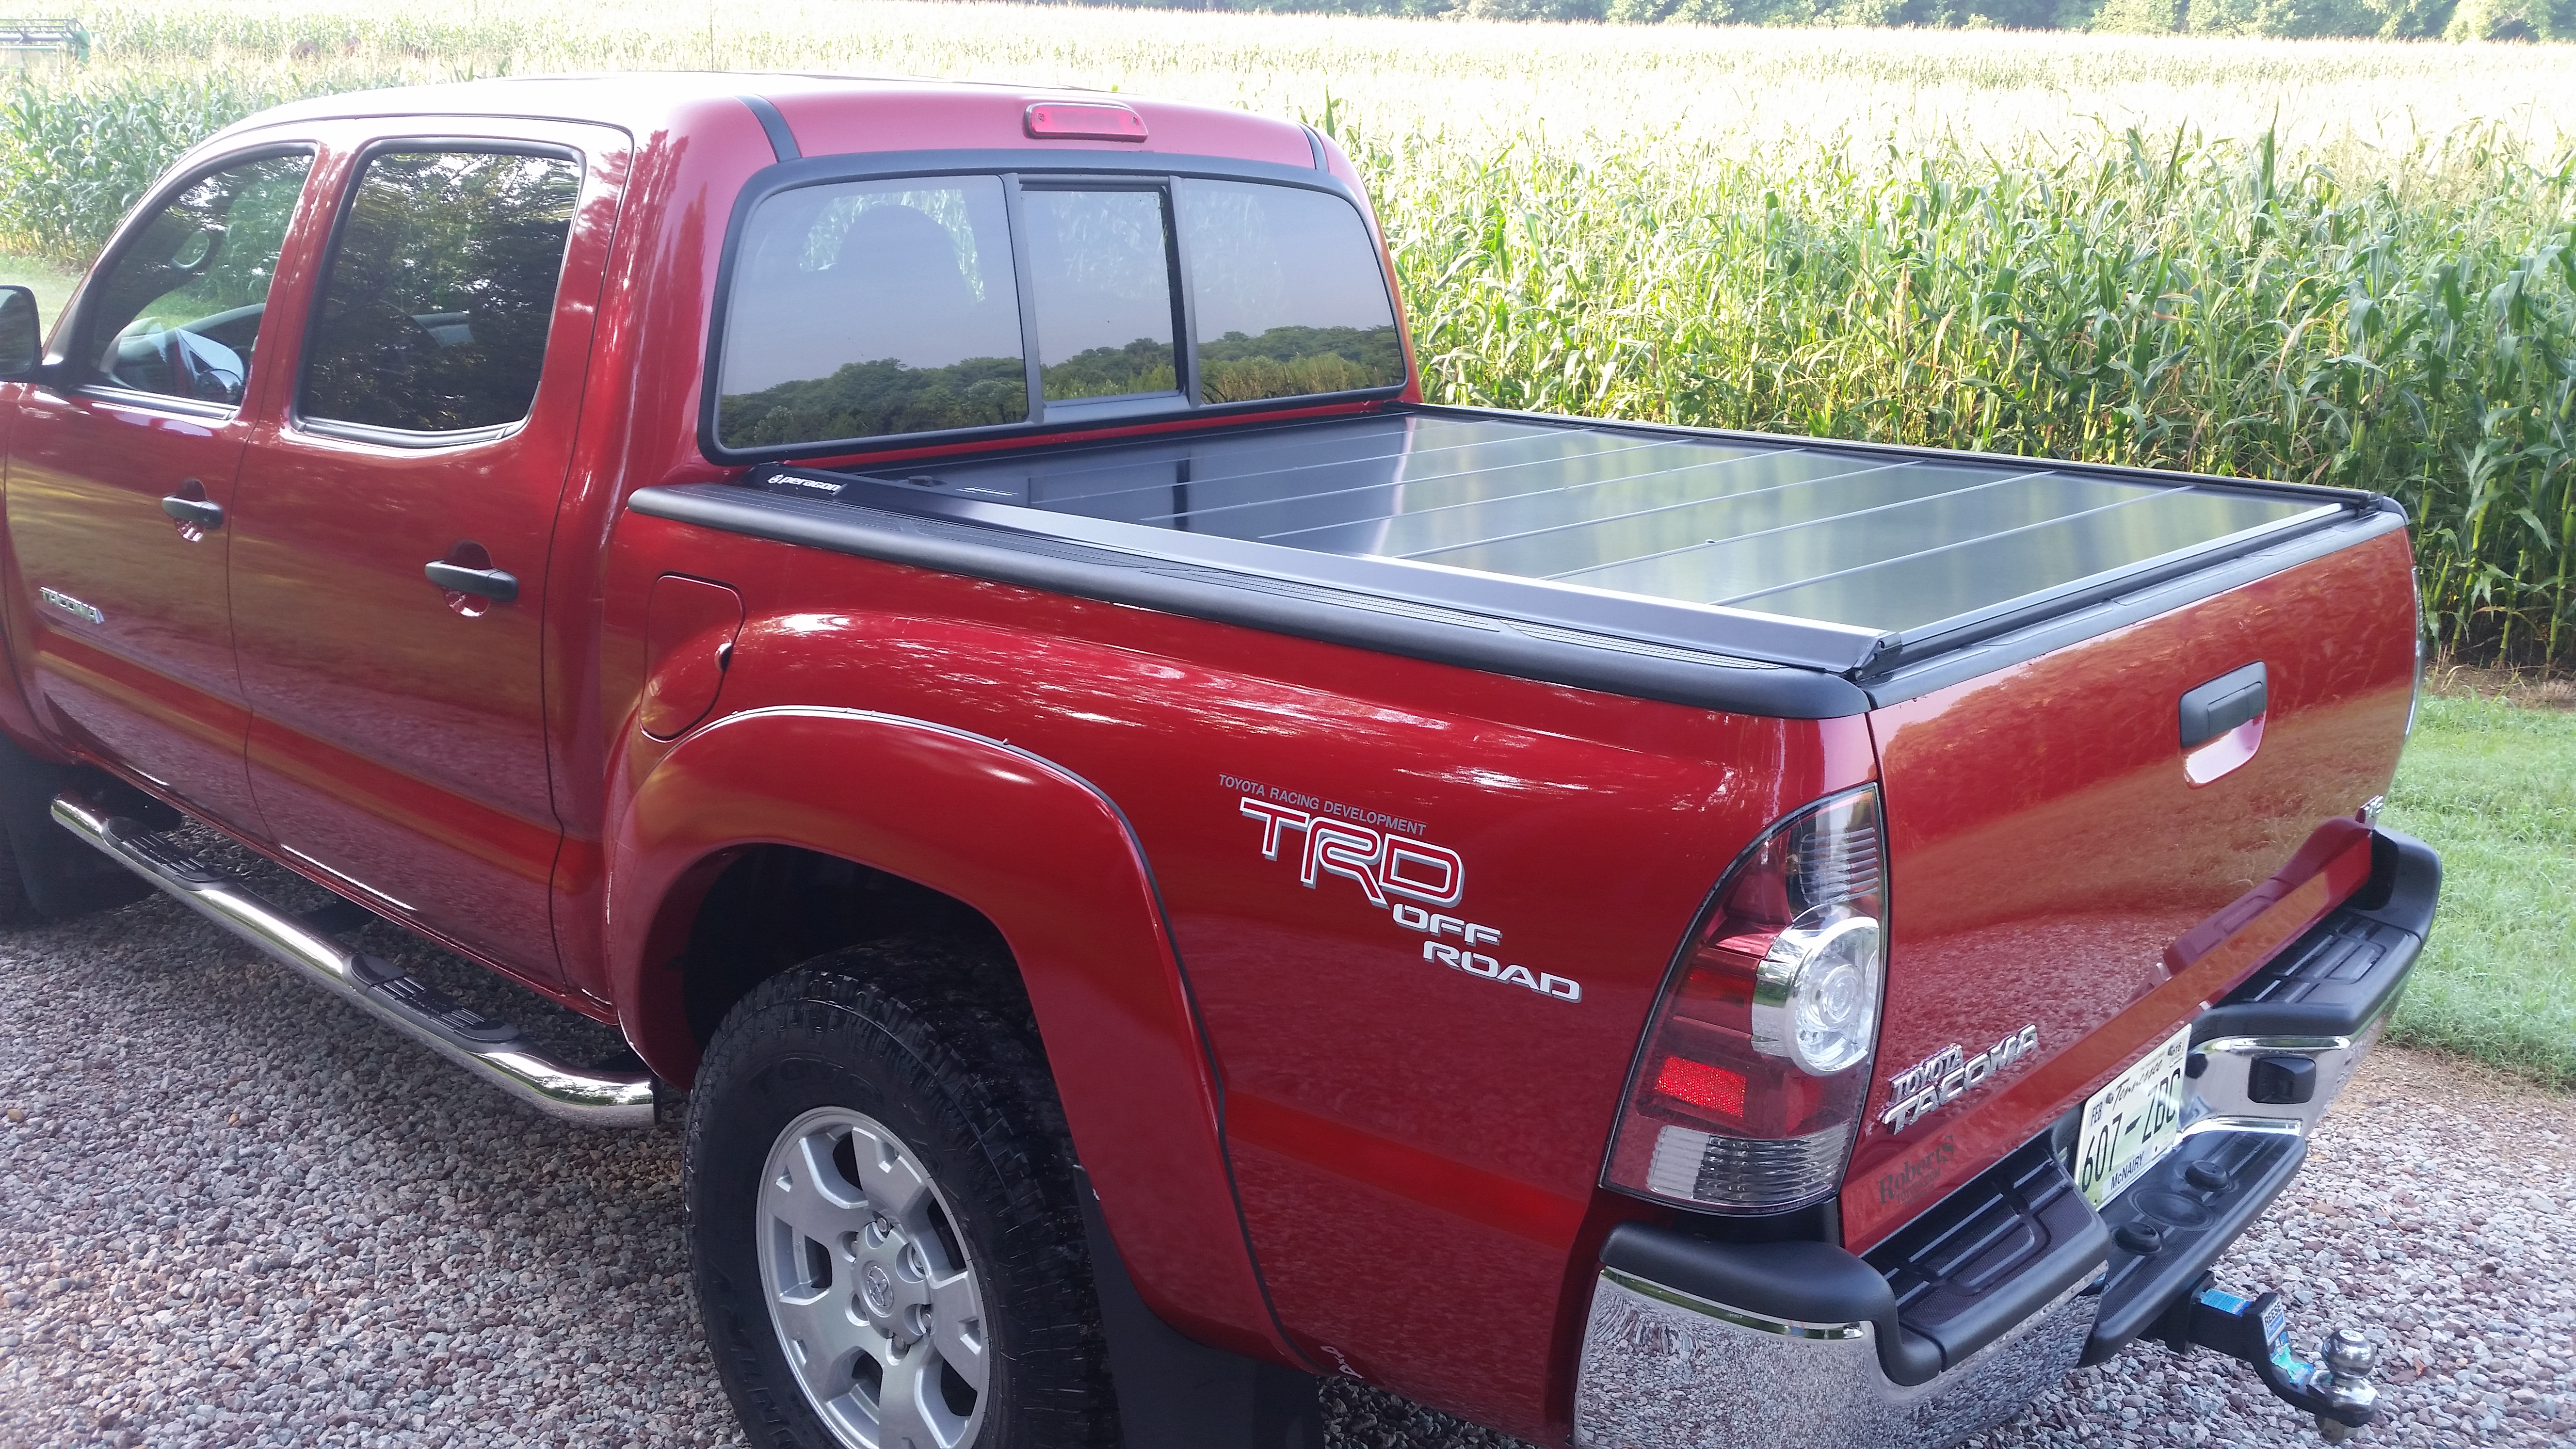 2010 Toyota Tacoma Pickup Truck Bed Covers Peragon